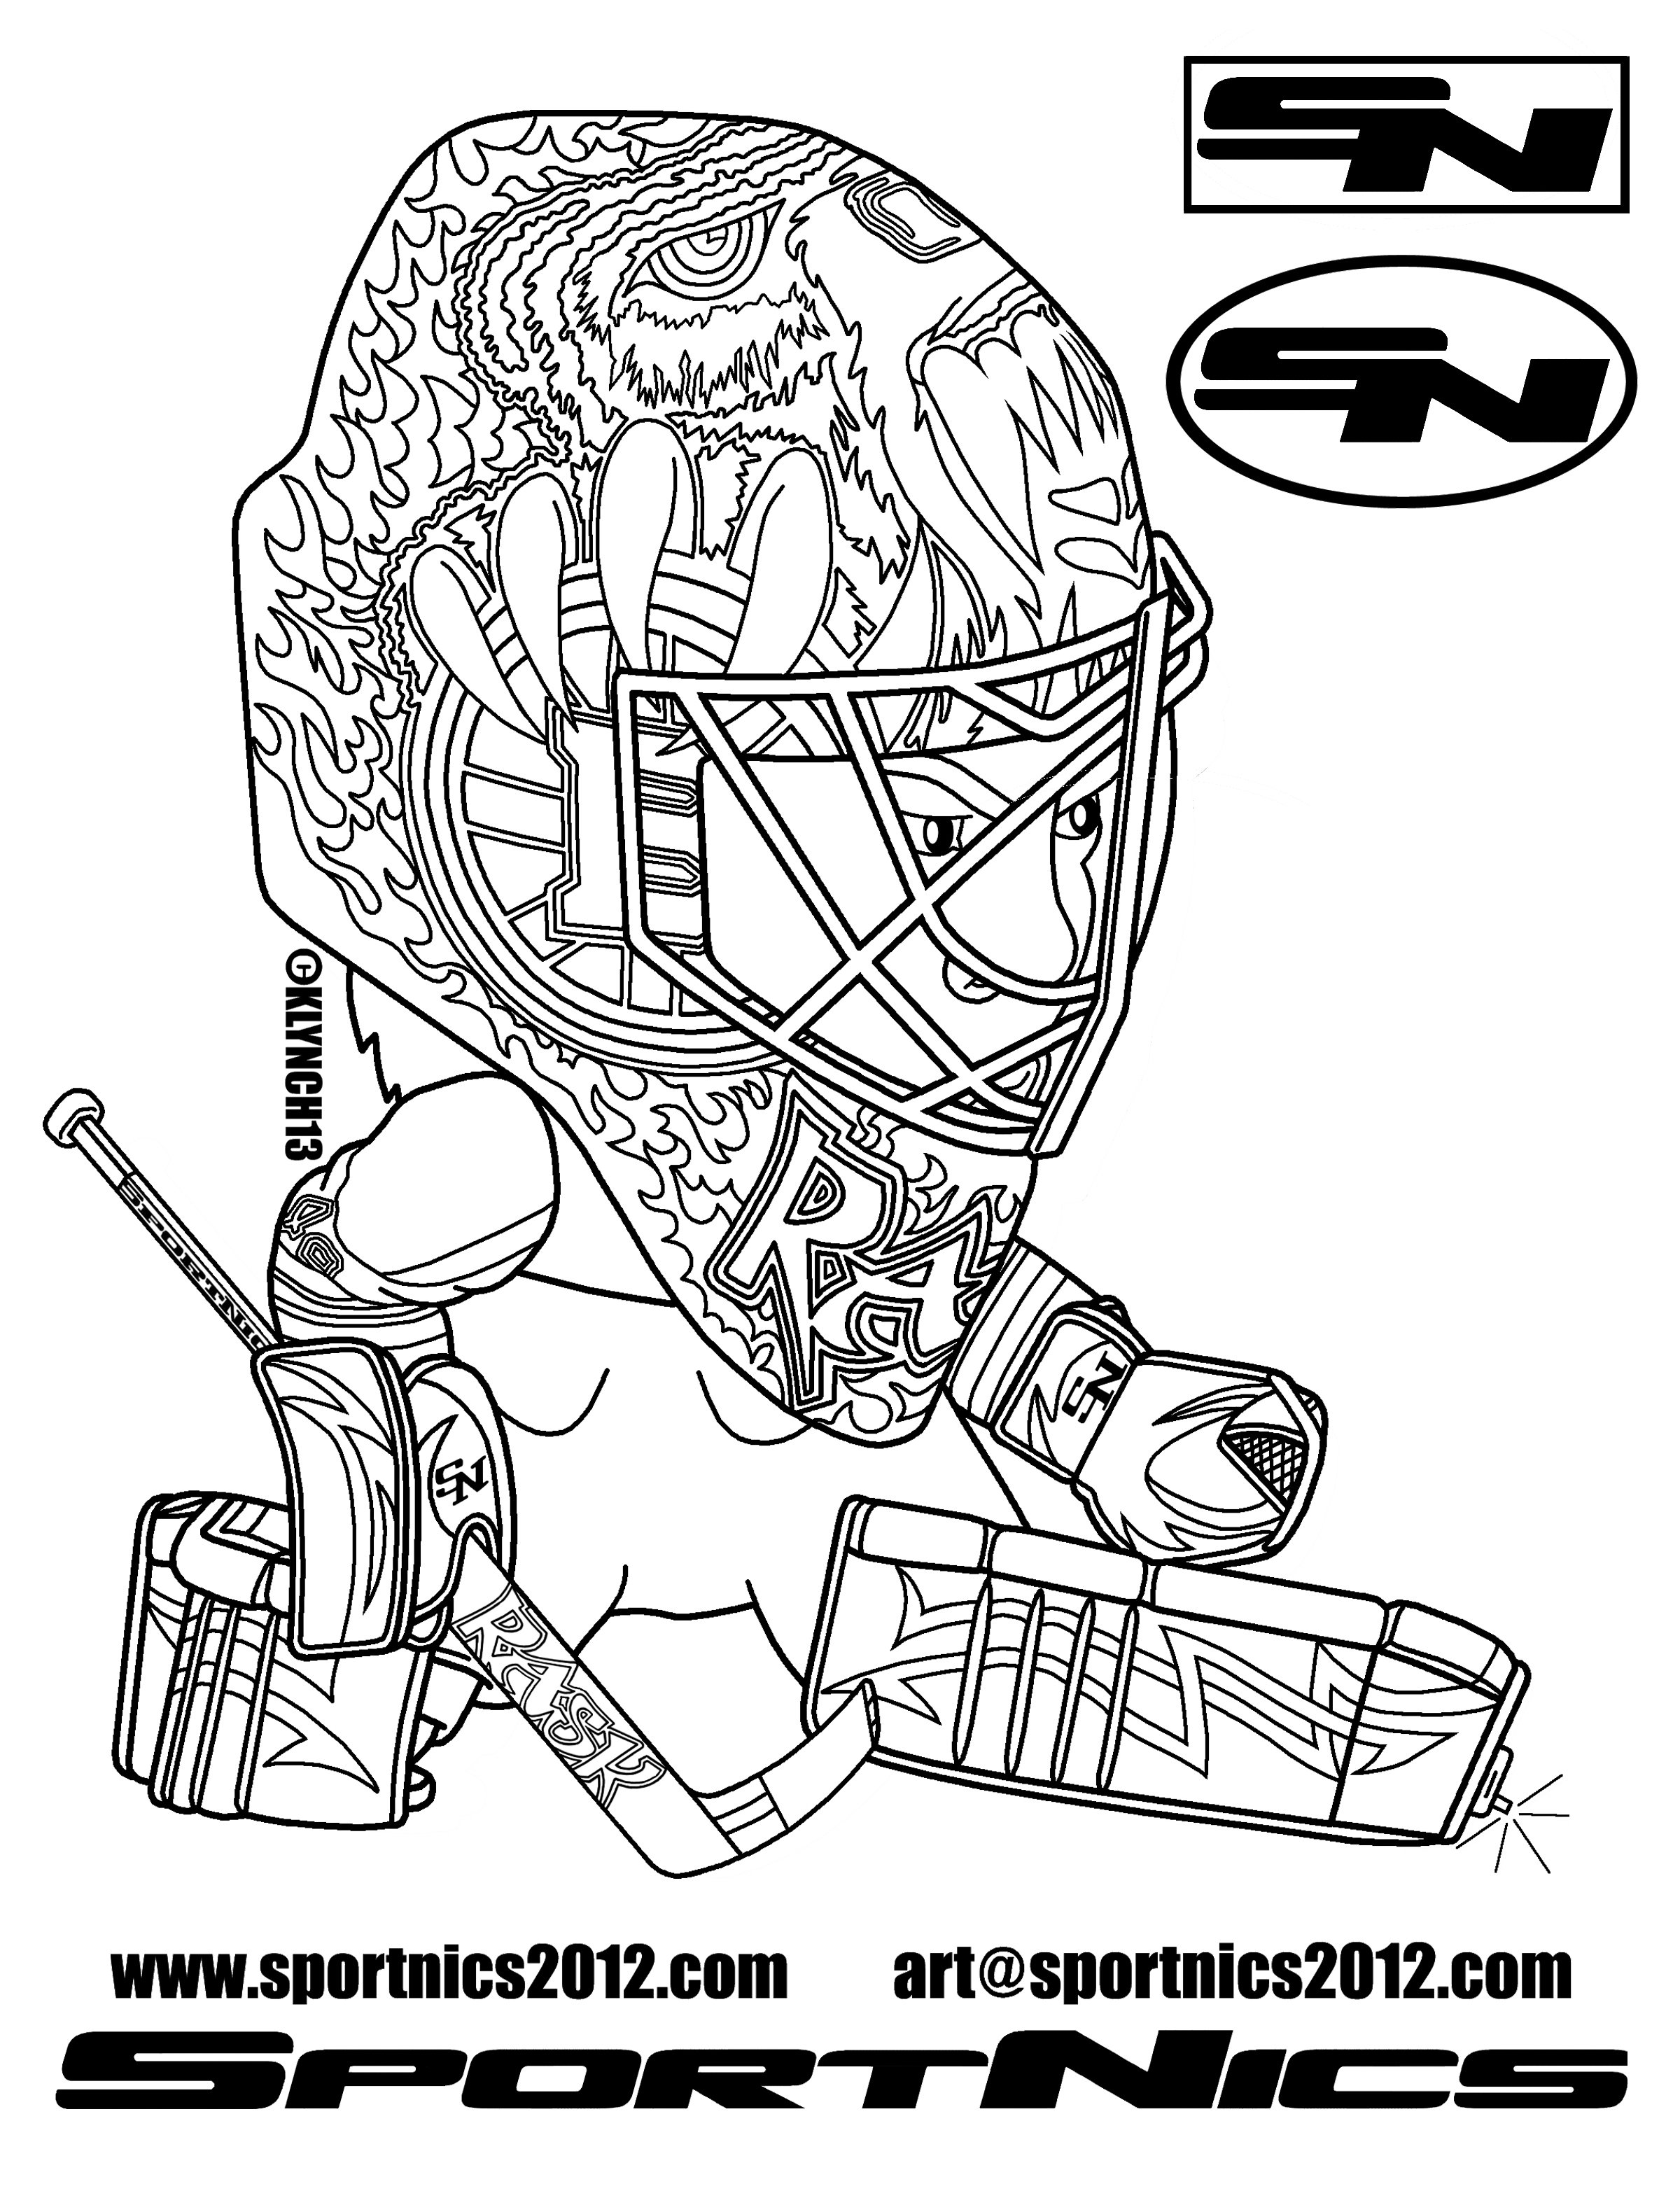 boston bruins coloring pictures goalie coloring pages at getcoloringscom free printable coloring bruins pictures boston